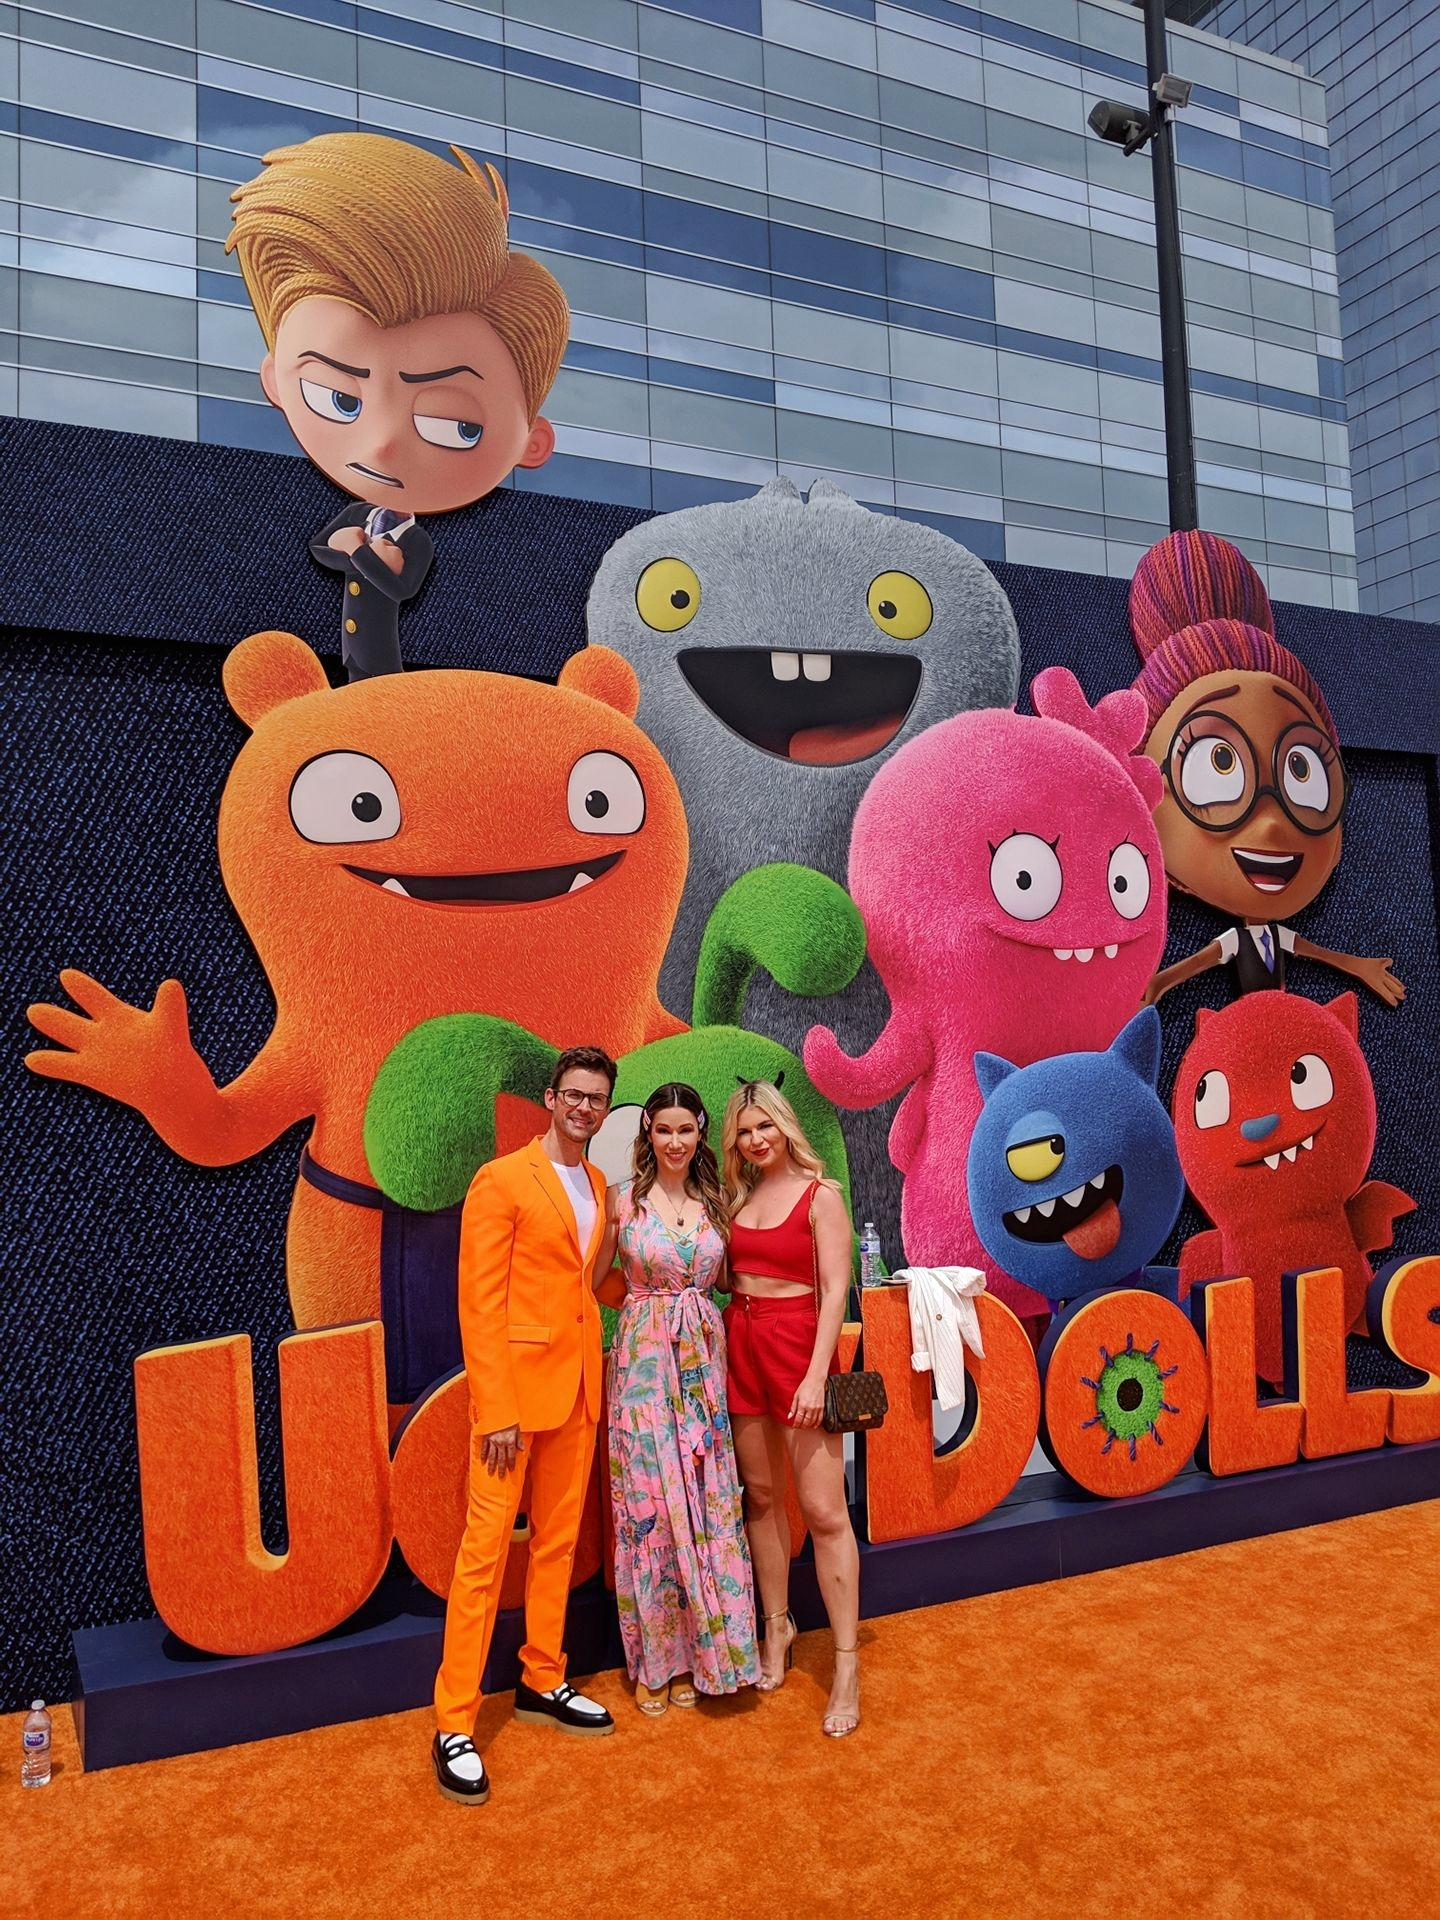 Stuart Brazell Live on the Red Carpet at the Ugly Dolls Premiere in Los Angeles